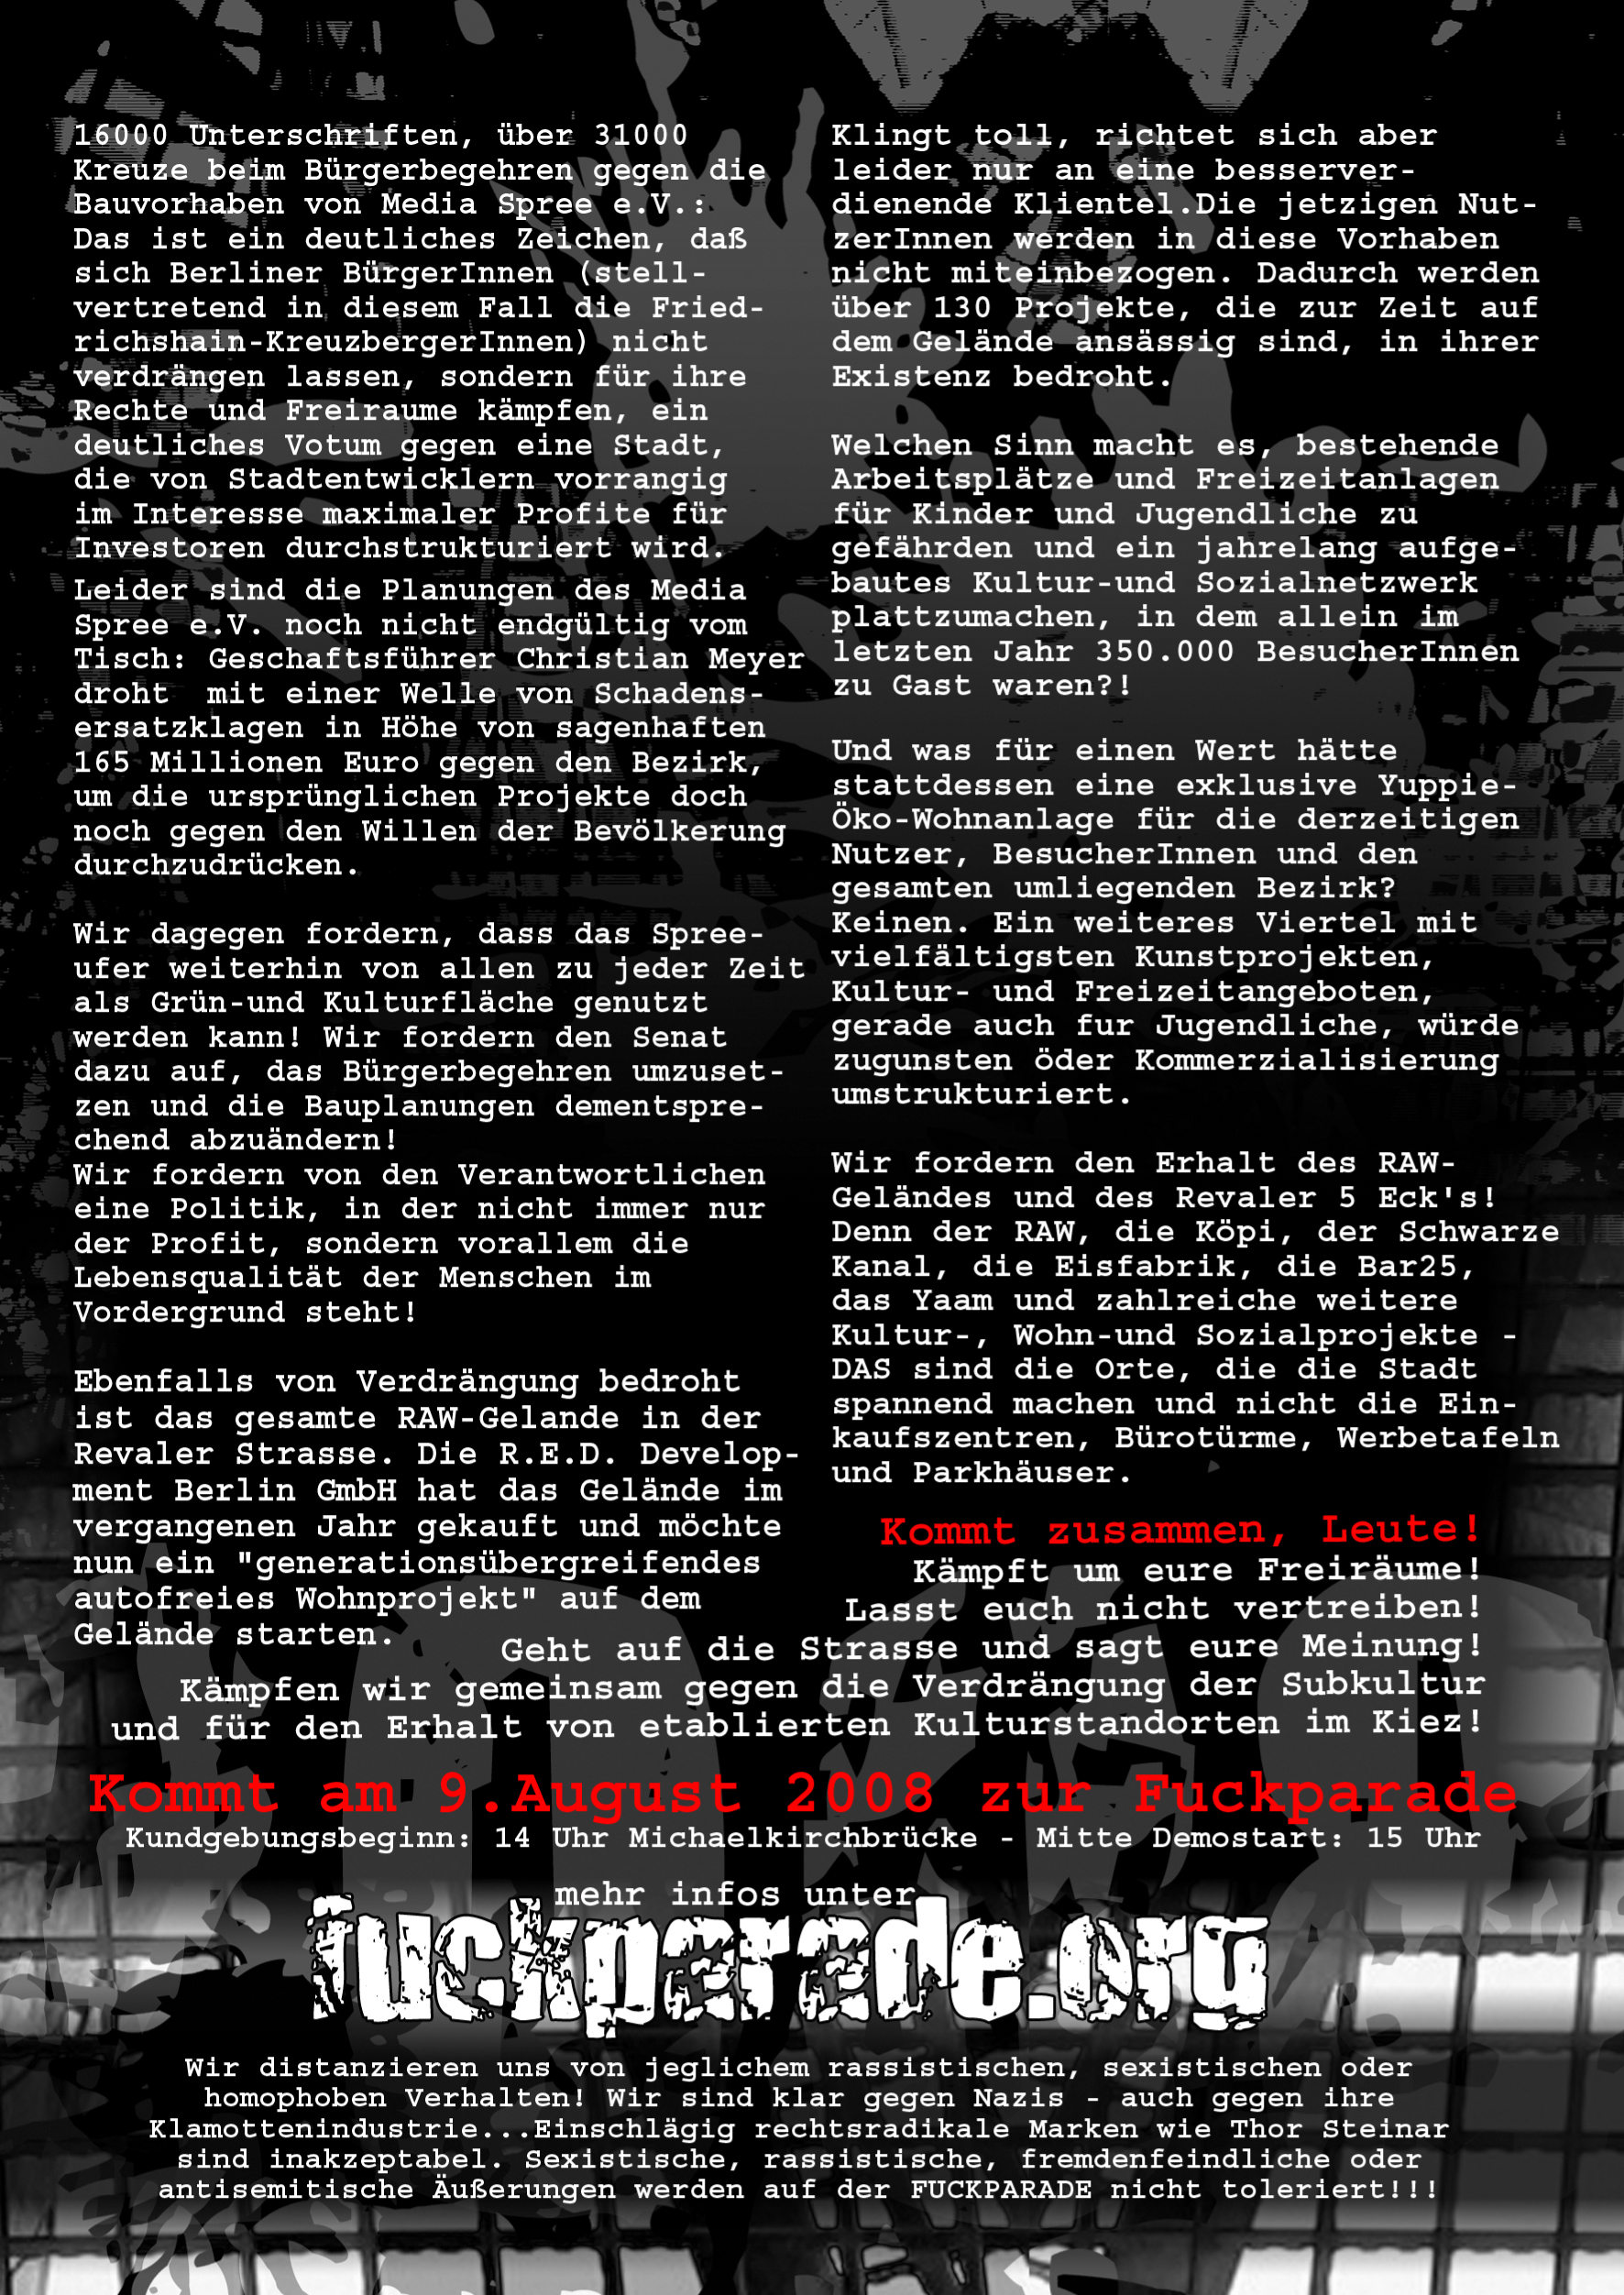 Fuckparade Flyer 2008: Rückseite mit Text